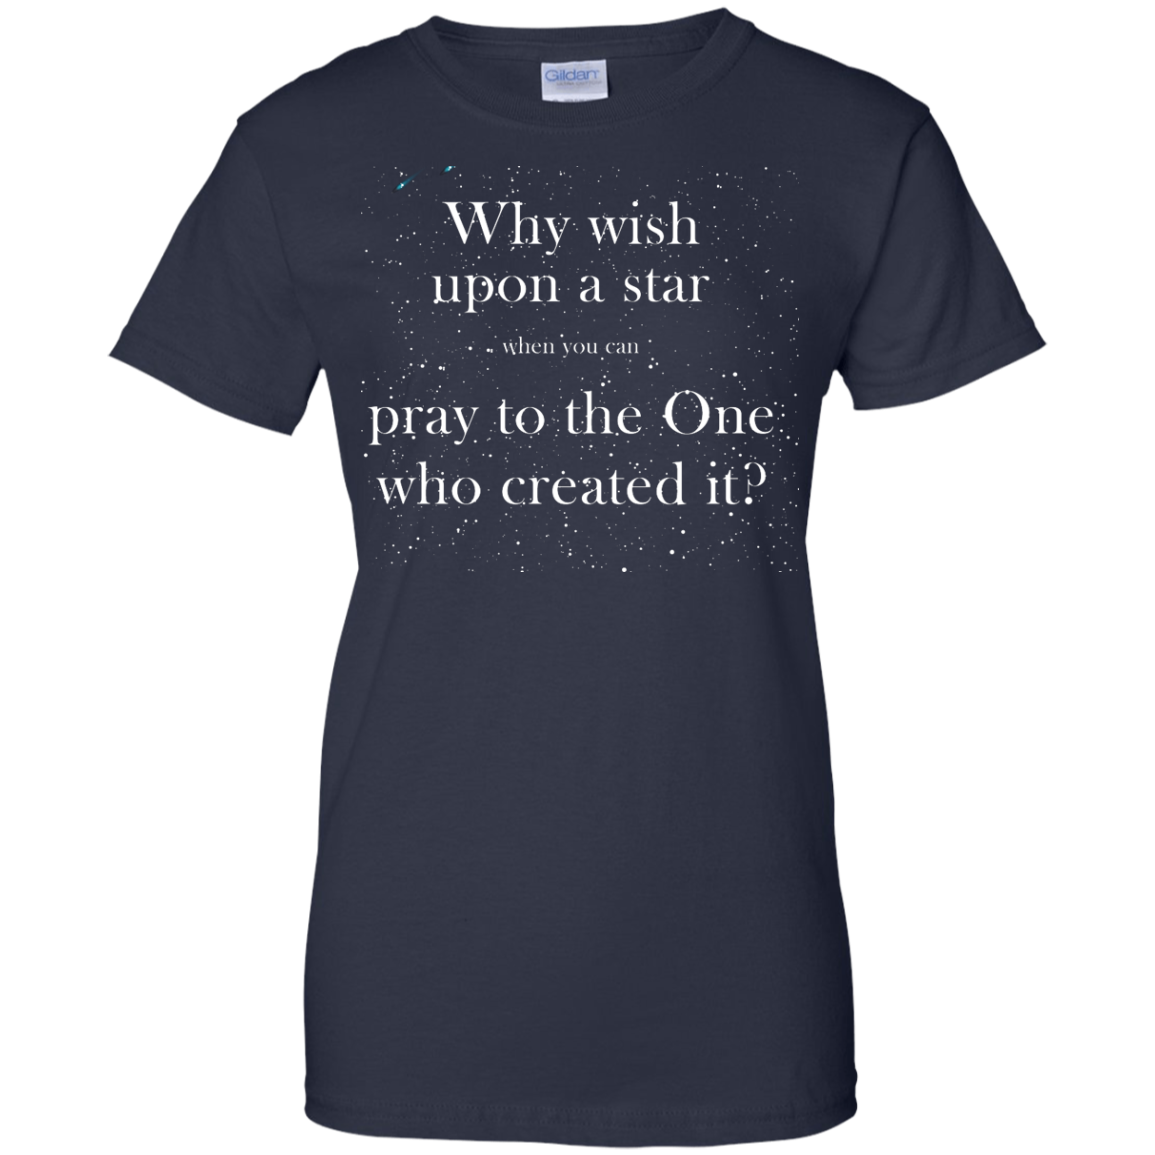 image 353px Why wish upon a star pray to the One who created it t shirts, hoodies